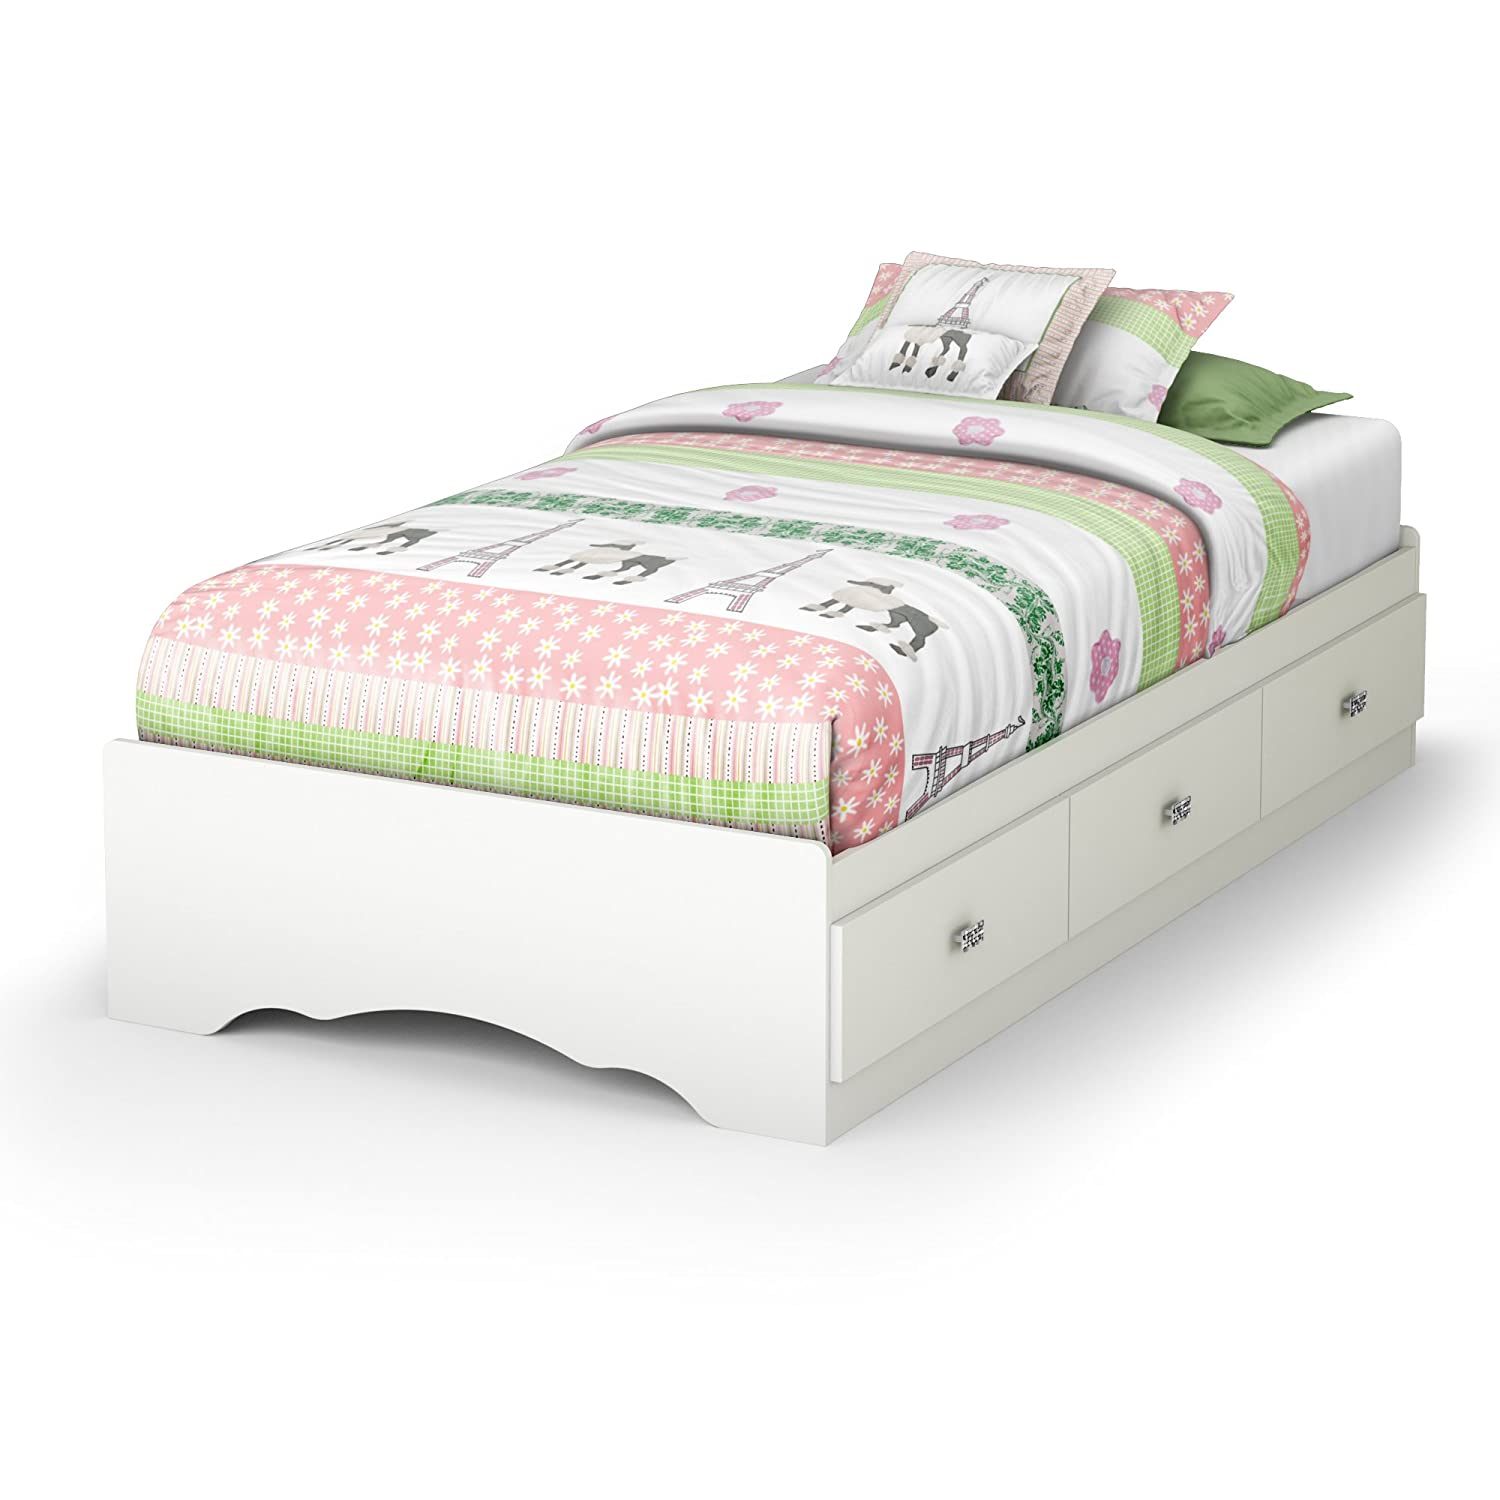 drawer with of co furniture walmart drawers on archived plans king large category twin bellybump frame bed target size